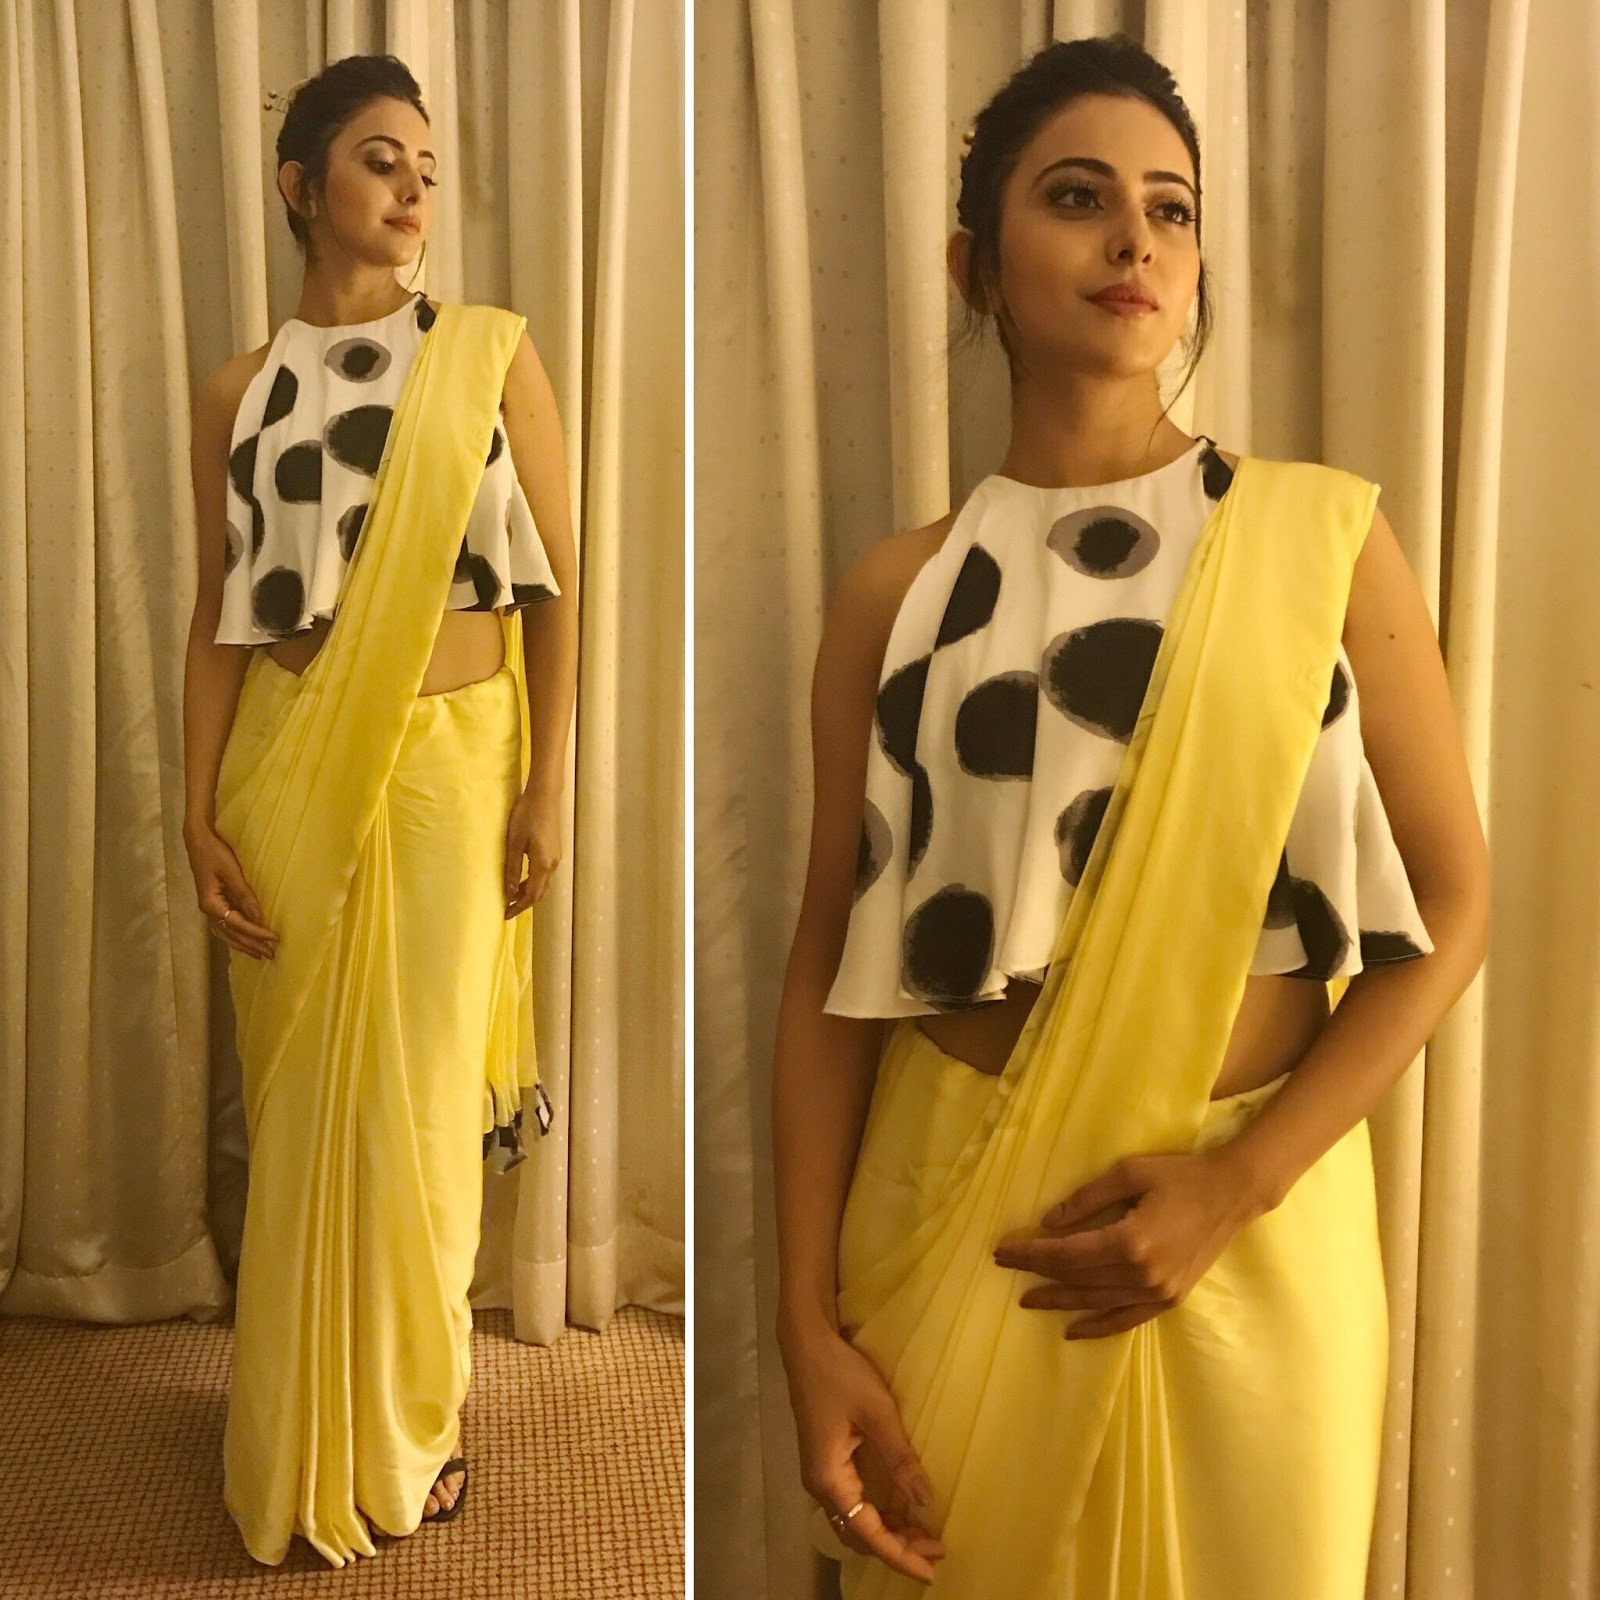 dd92e28e87ebe7 If you are aiming for a fusion saree look opt for a western style printed blouse  design and pair up with a plain saree. This polka dotted flared blouse with  ...